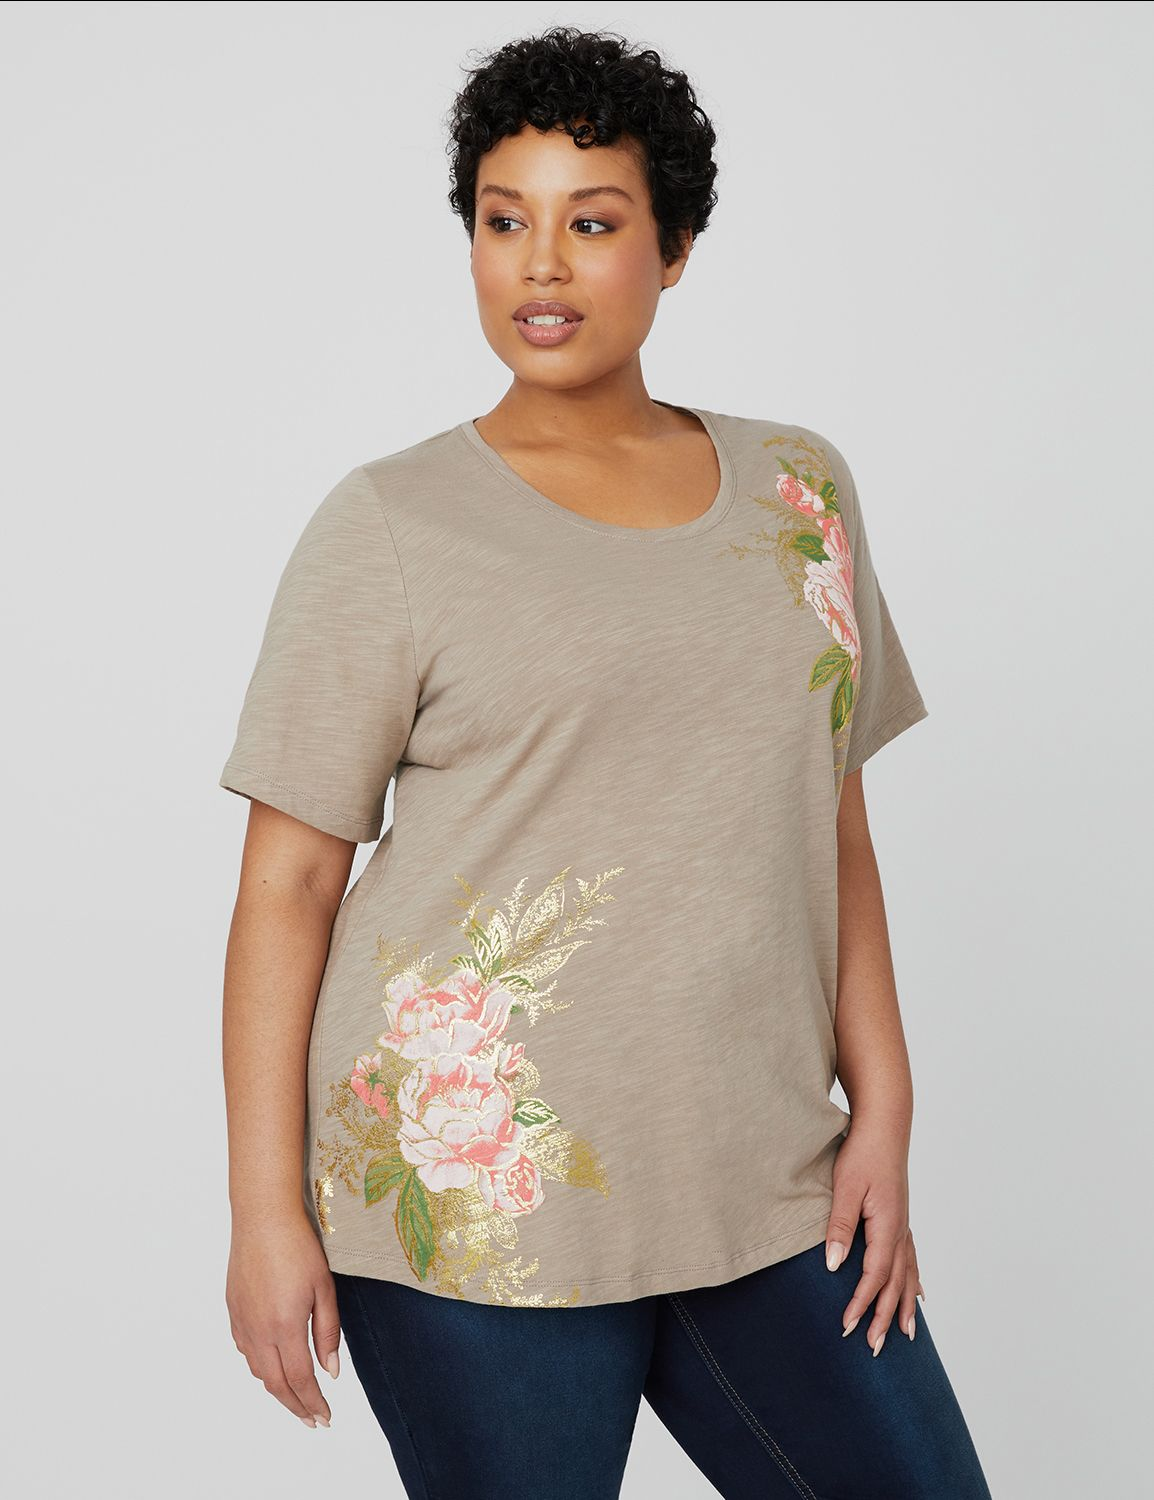 Tranquil Floral Tee 1088365 FLORAL SCREEN MP-300105268